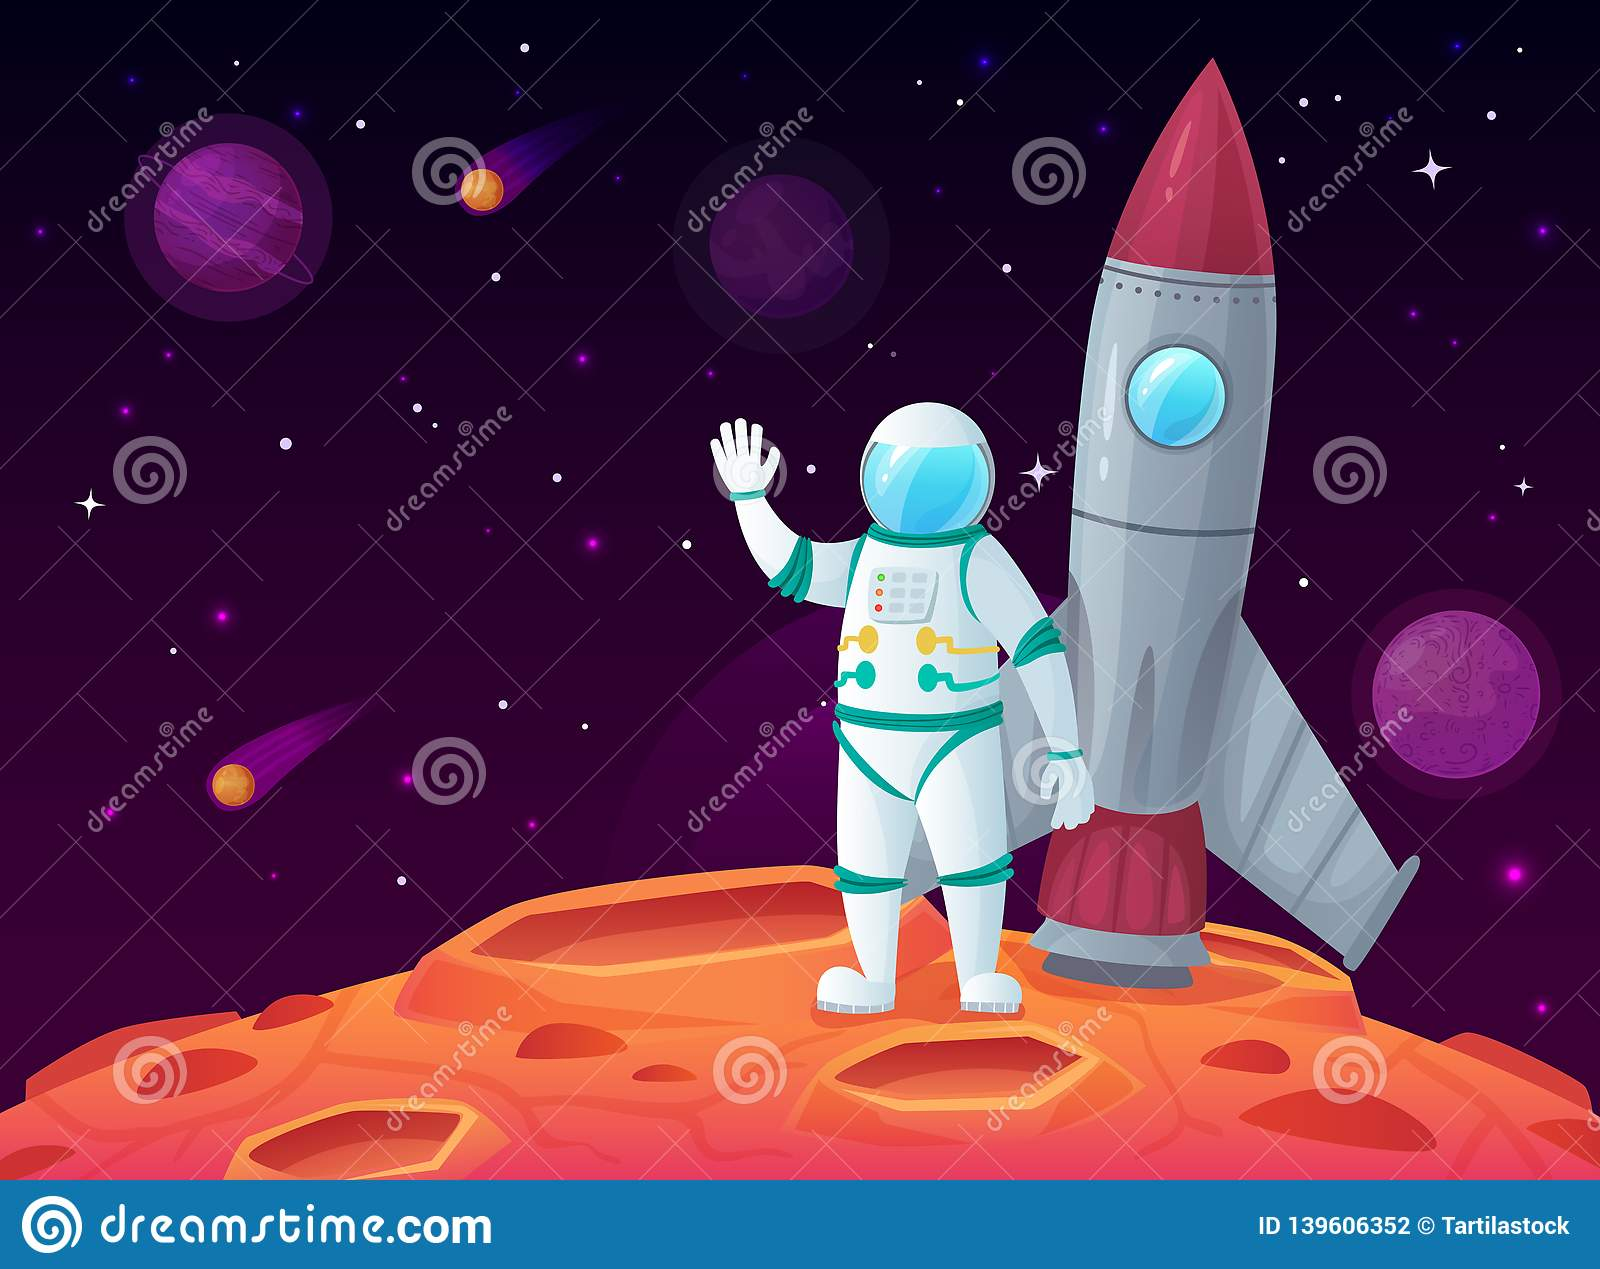 Astronaut in lunar surface. Rocket spaceship, space planet and outerspace travel spacecraft vector cartoon illustration